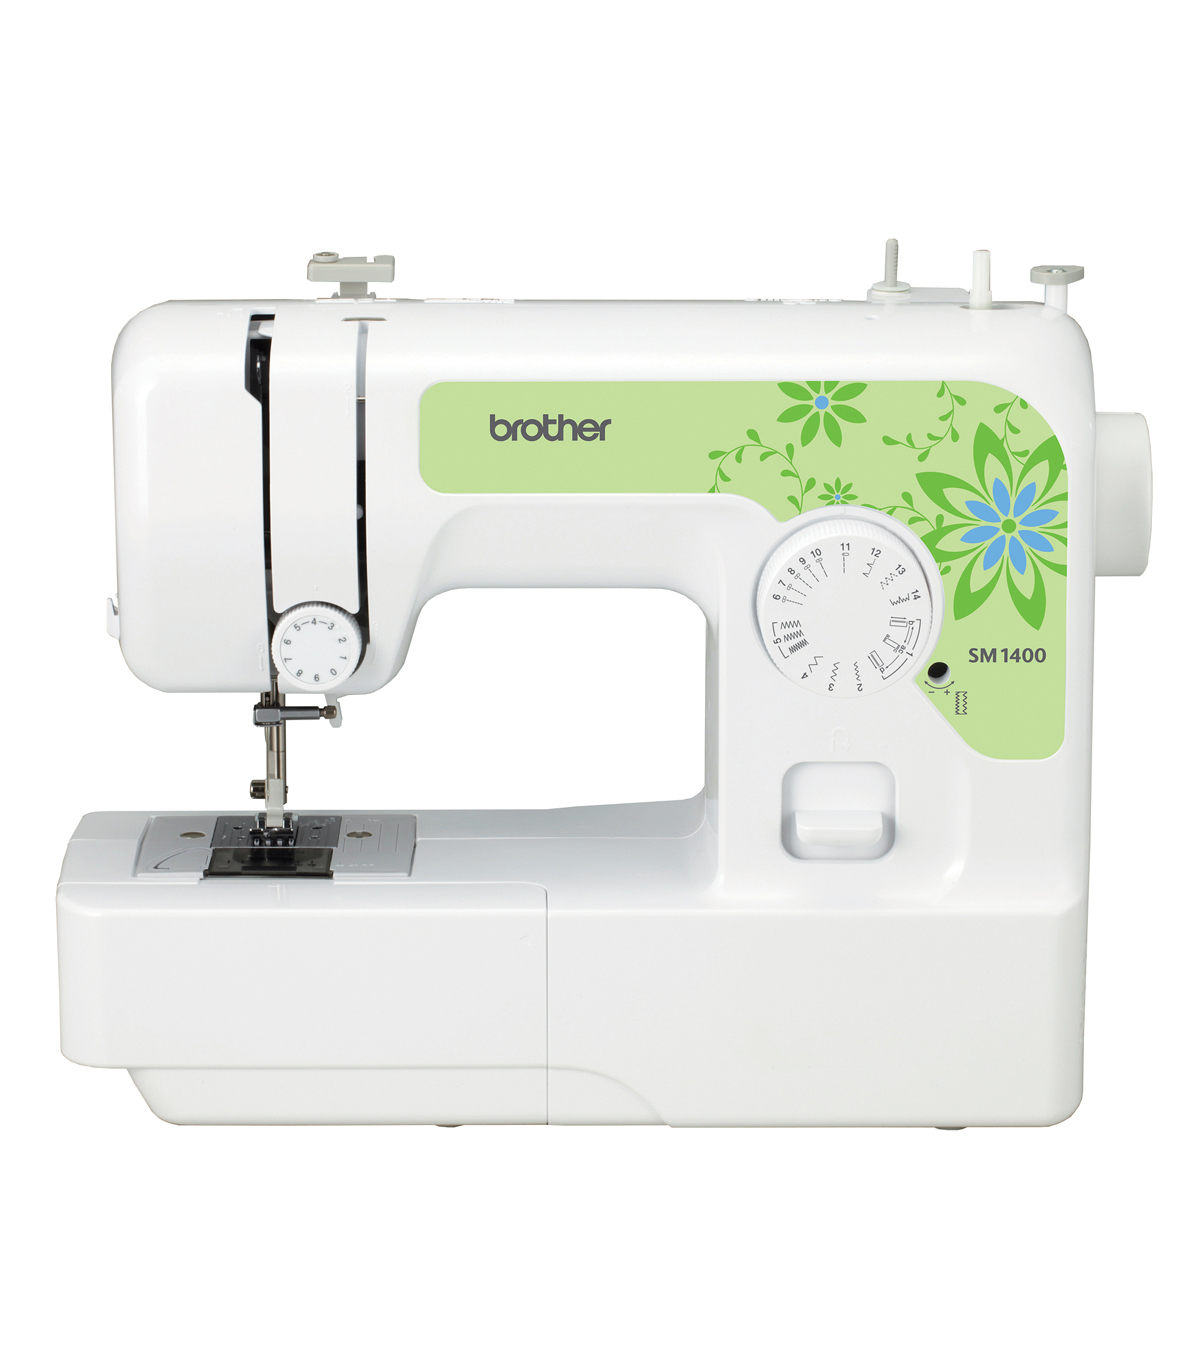 Brother SM1400 Sewing Machine